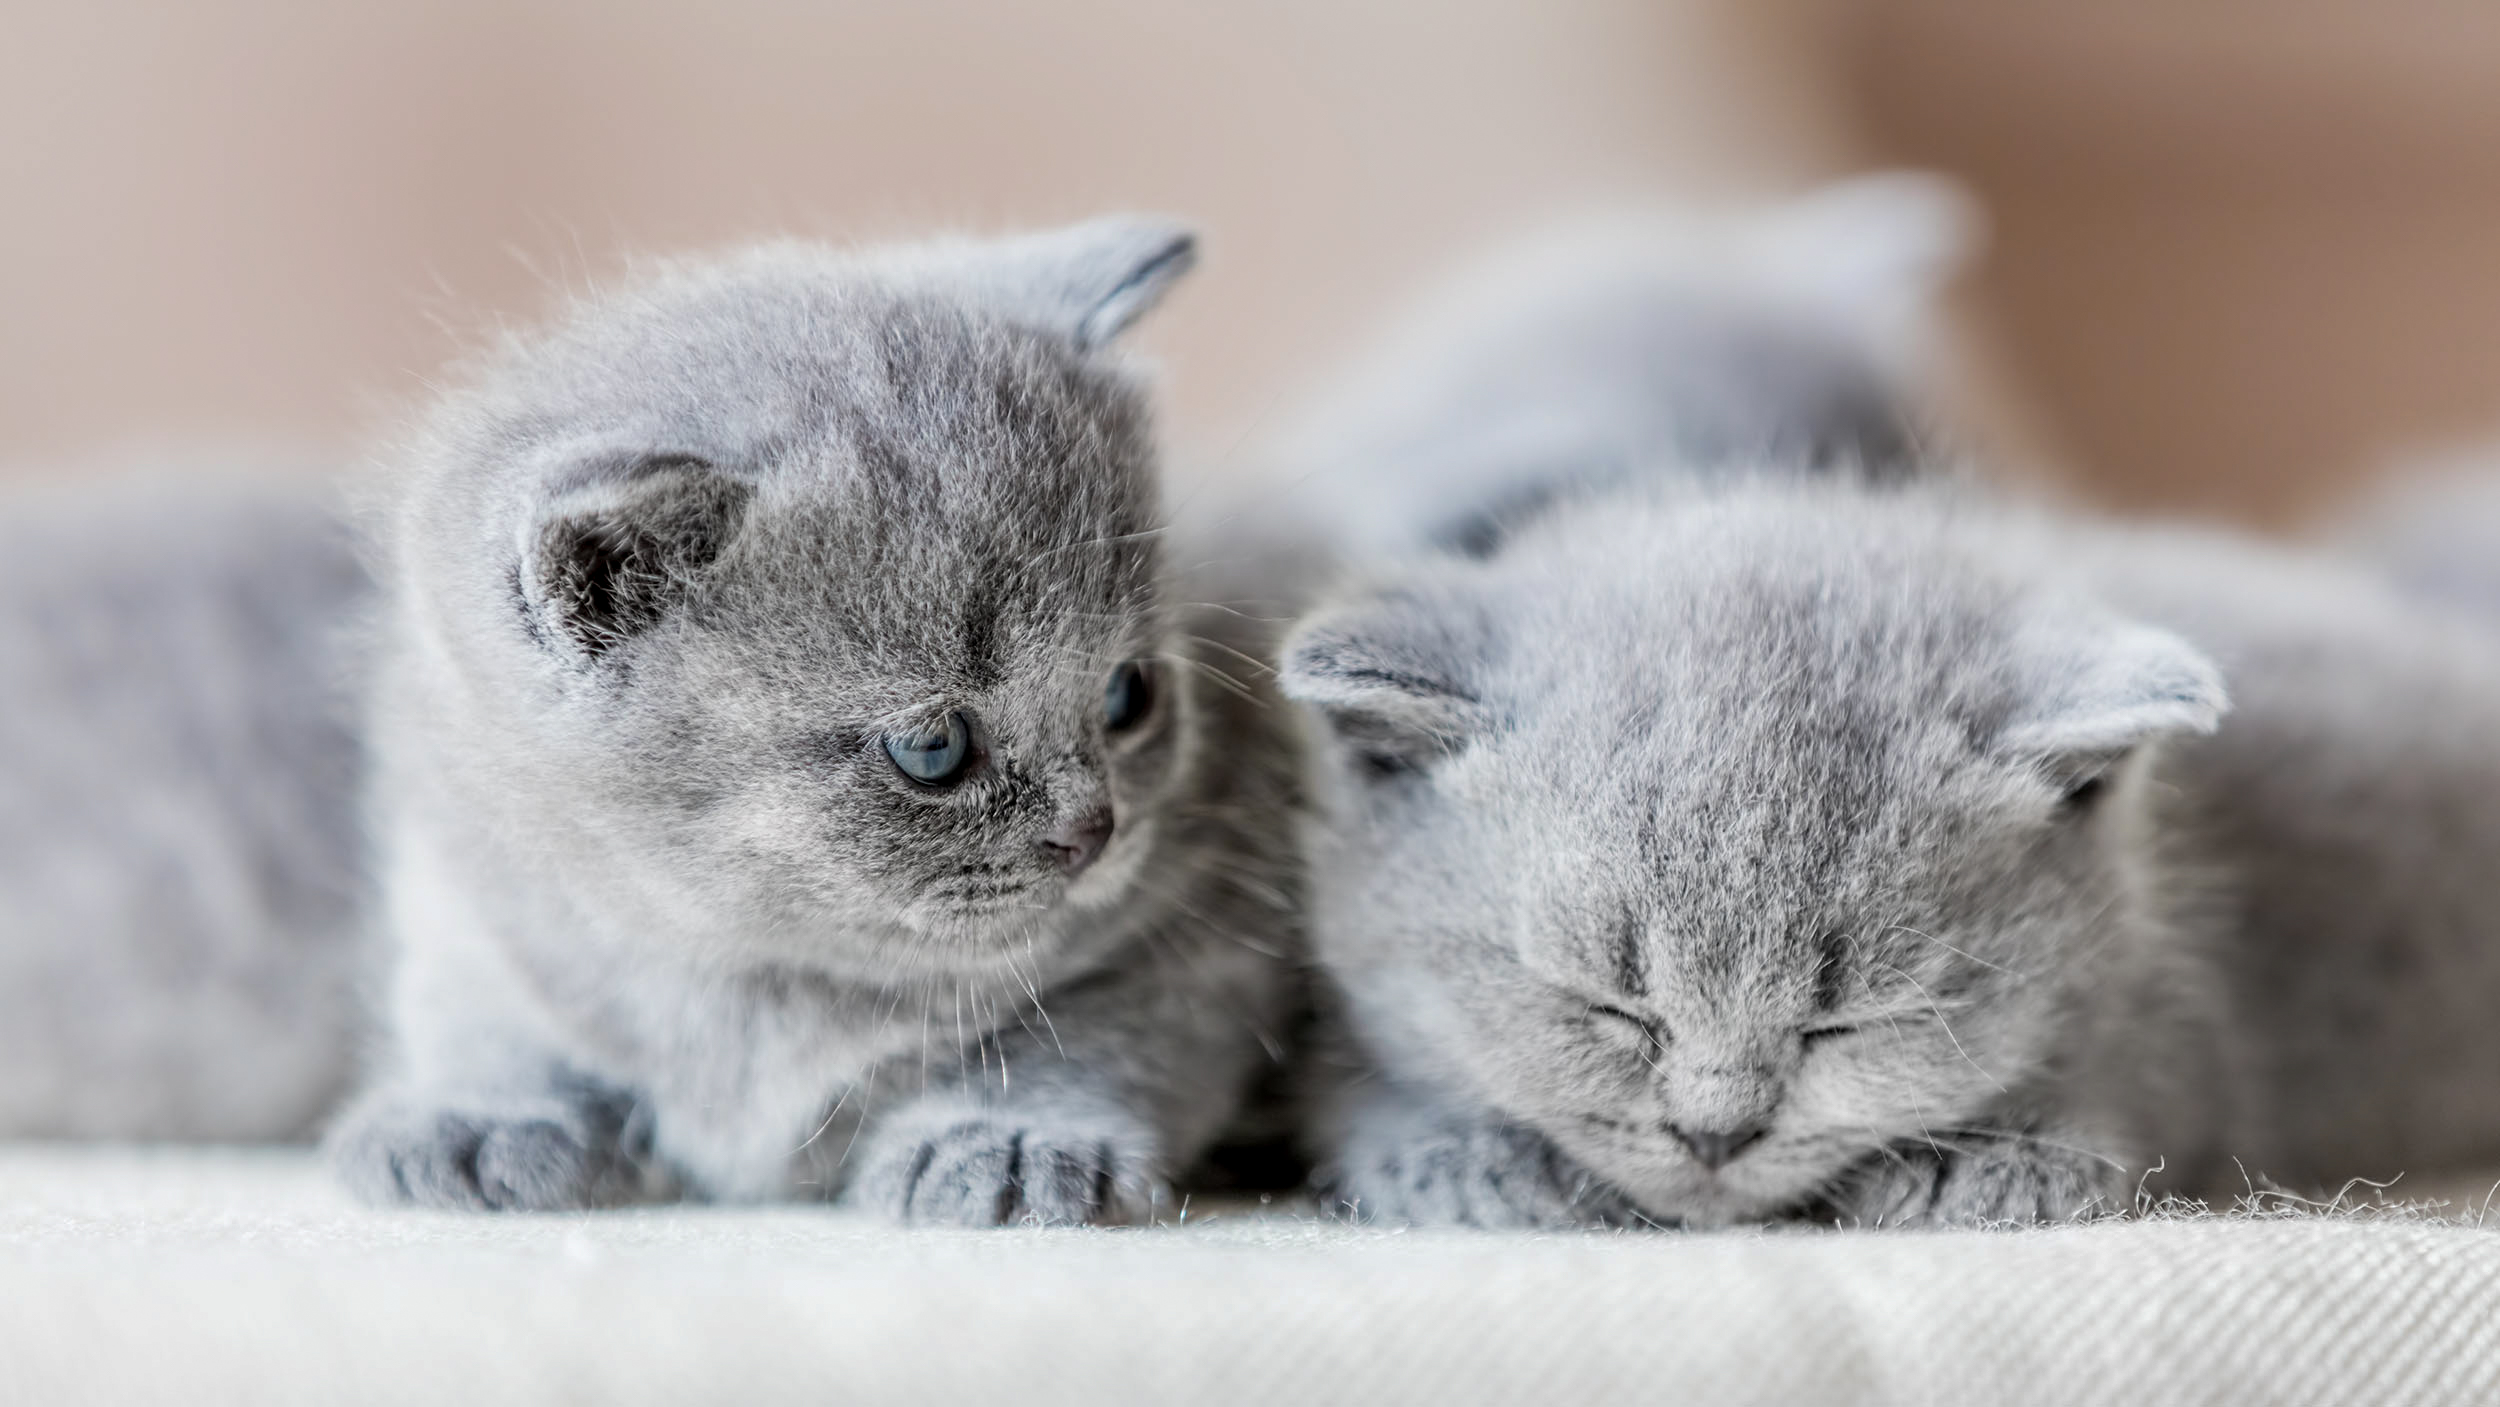 British shorthair kittens lying together indoors